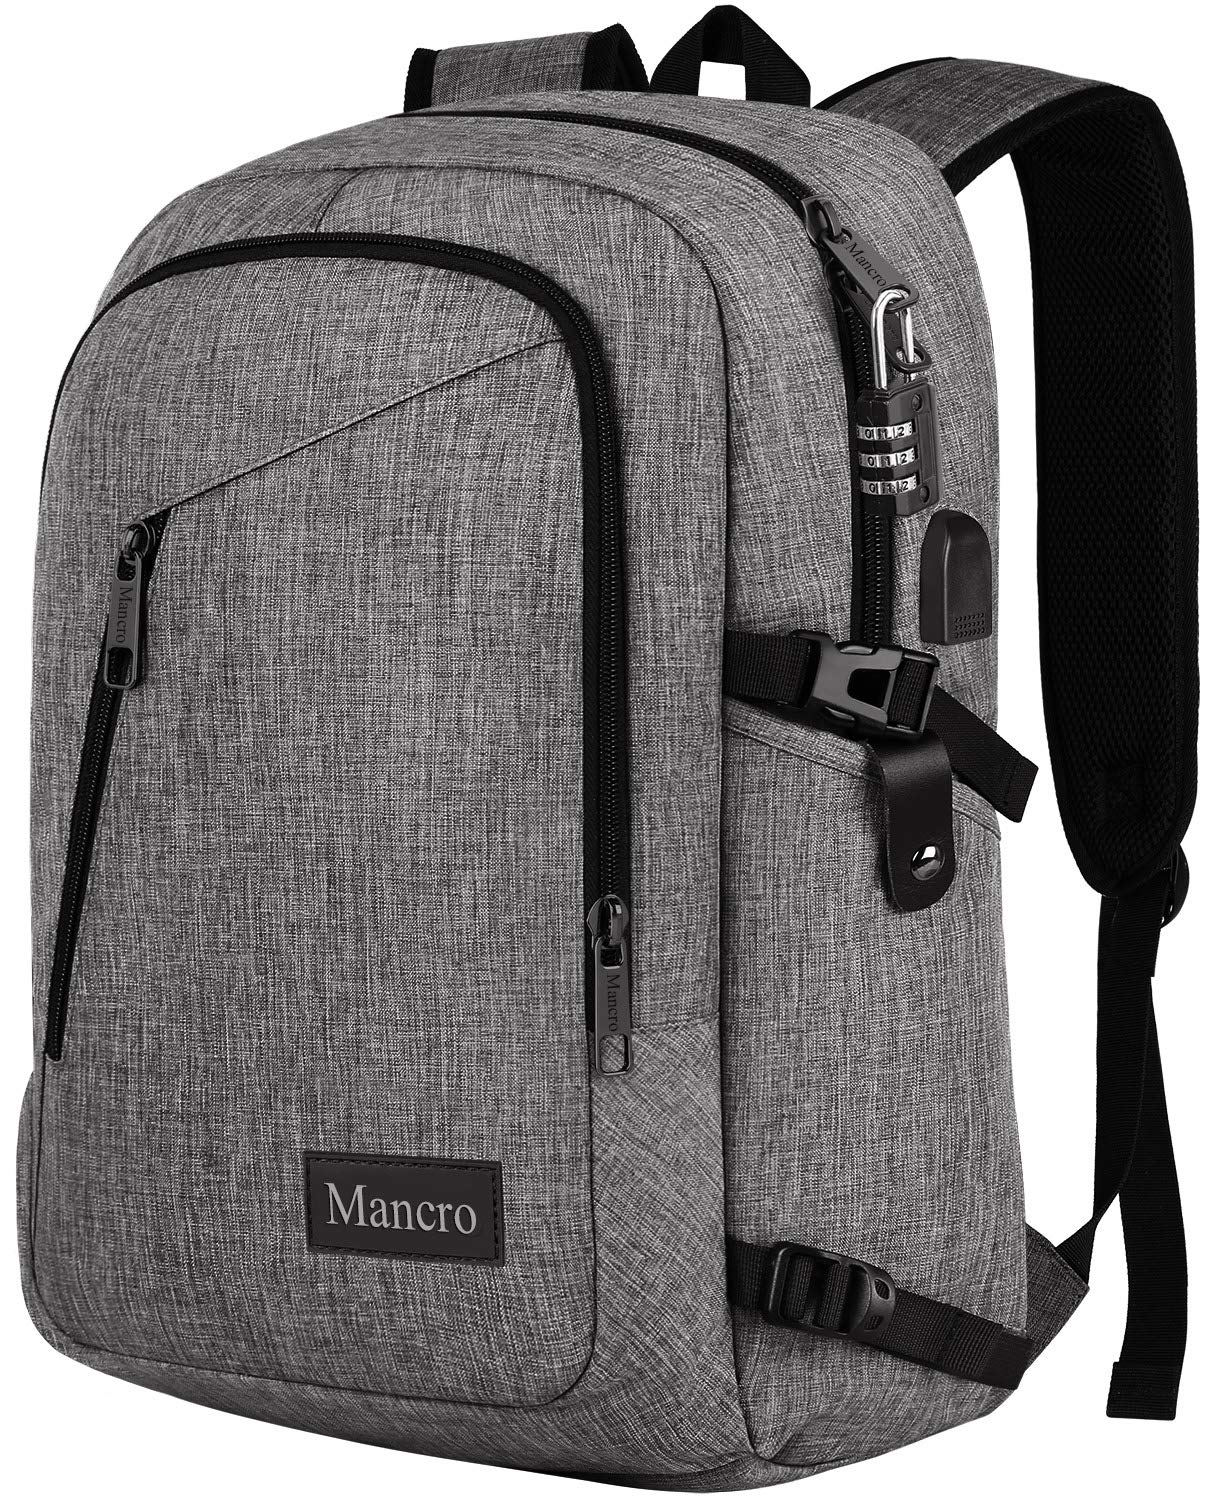 Laptop Backpack, School Backpacks Durable Water Resistant College Bookbag for Women and Men, Anti Theft Slim Business Travel Computer Bag with USB Charging Port Fits UNDER 17 Inch Laptop (Grey) by Mancro